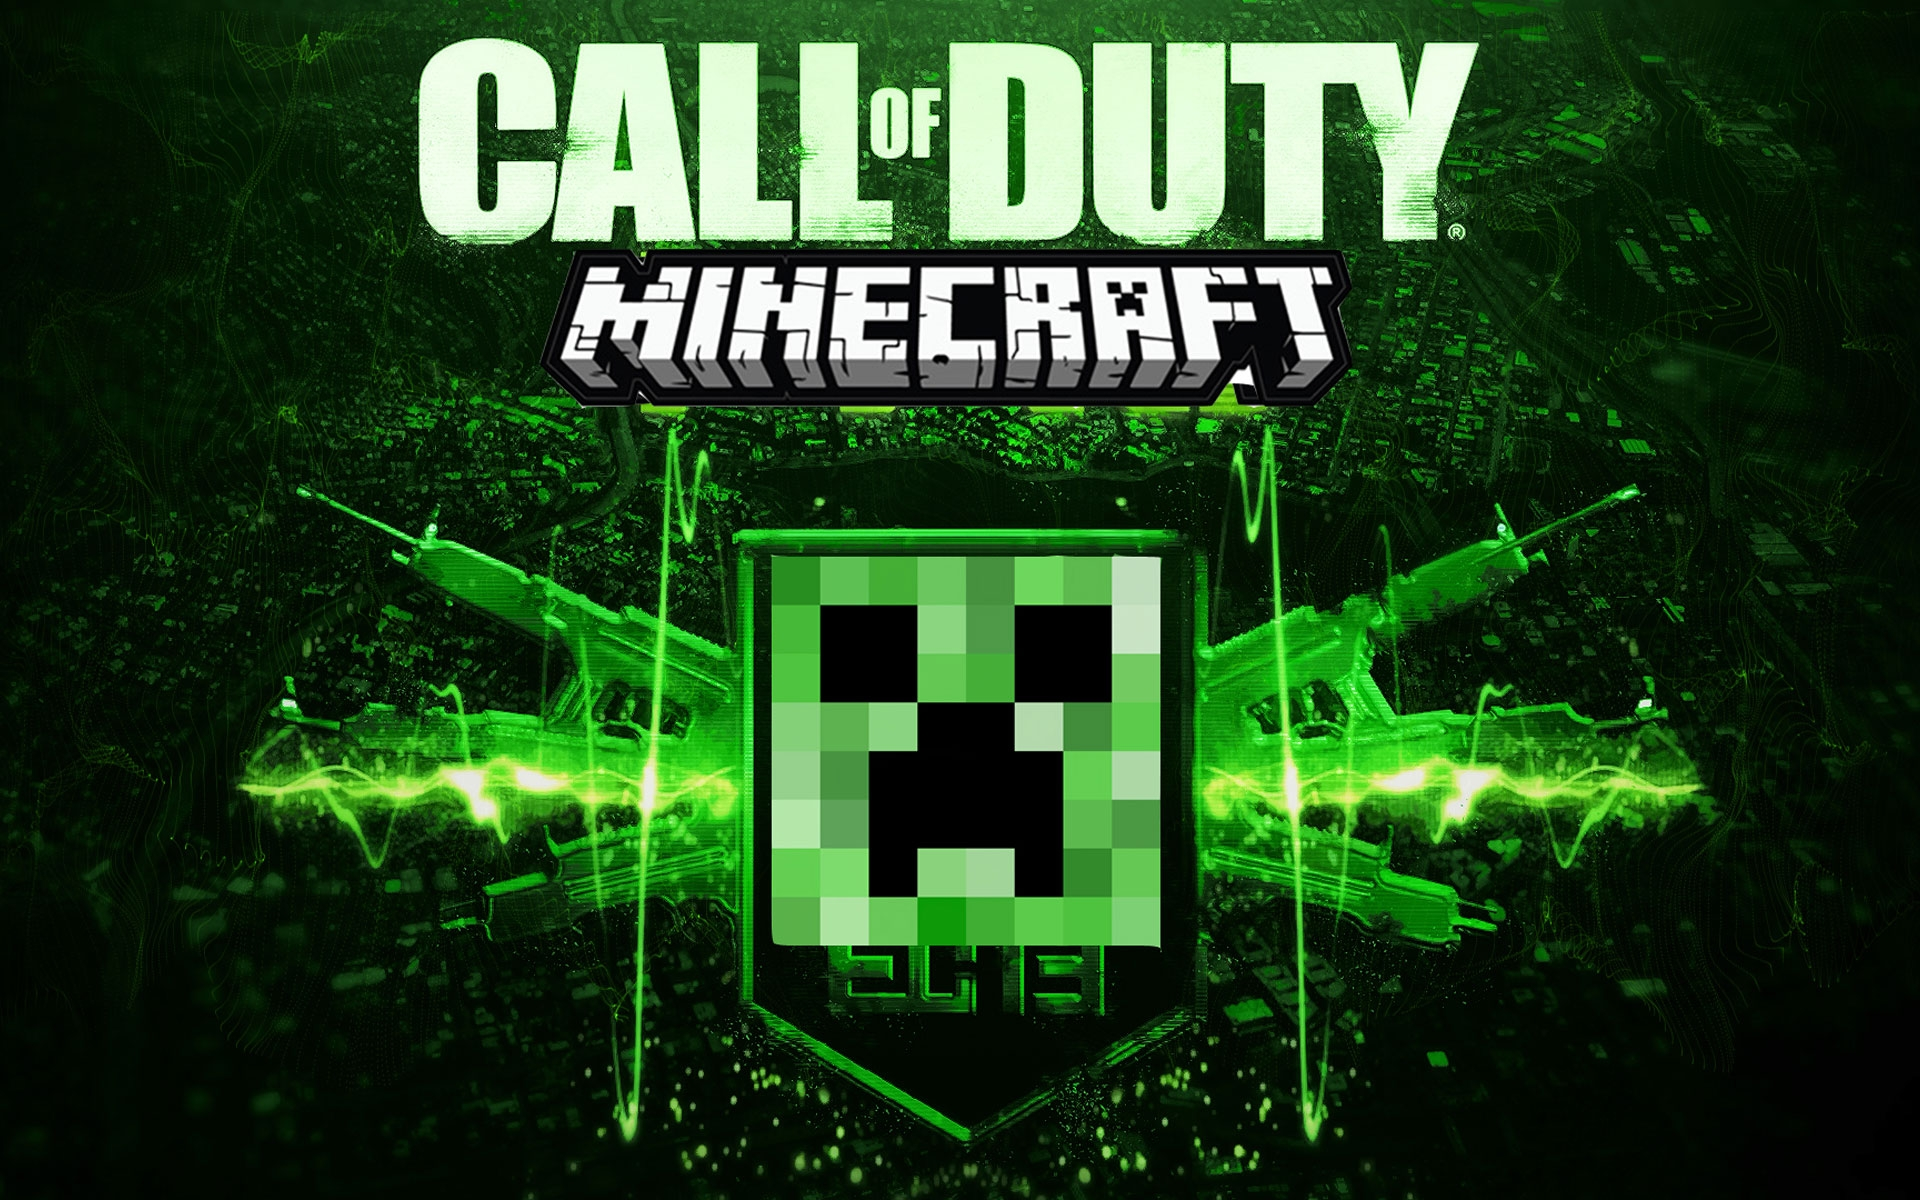 minecraft wallpaper 1920x1200 original - photo #14